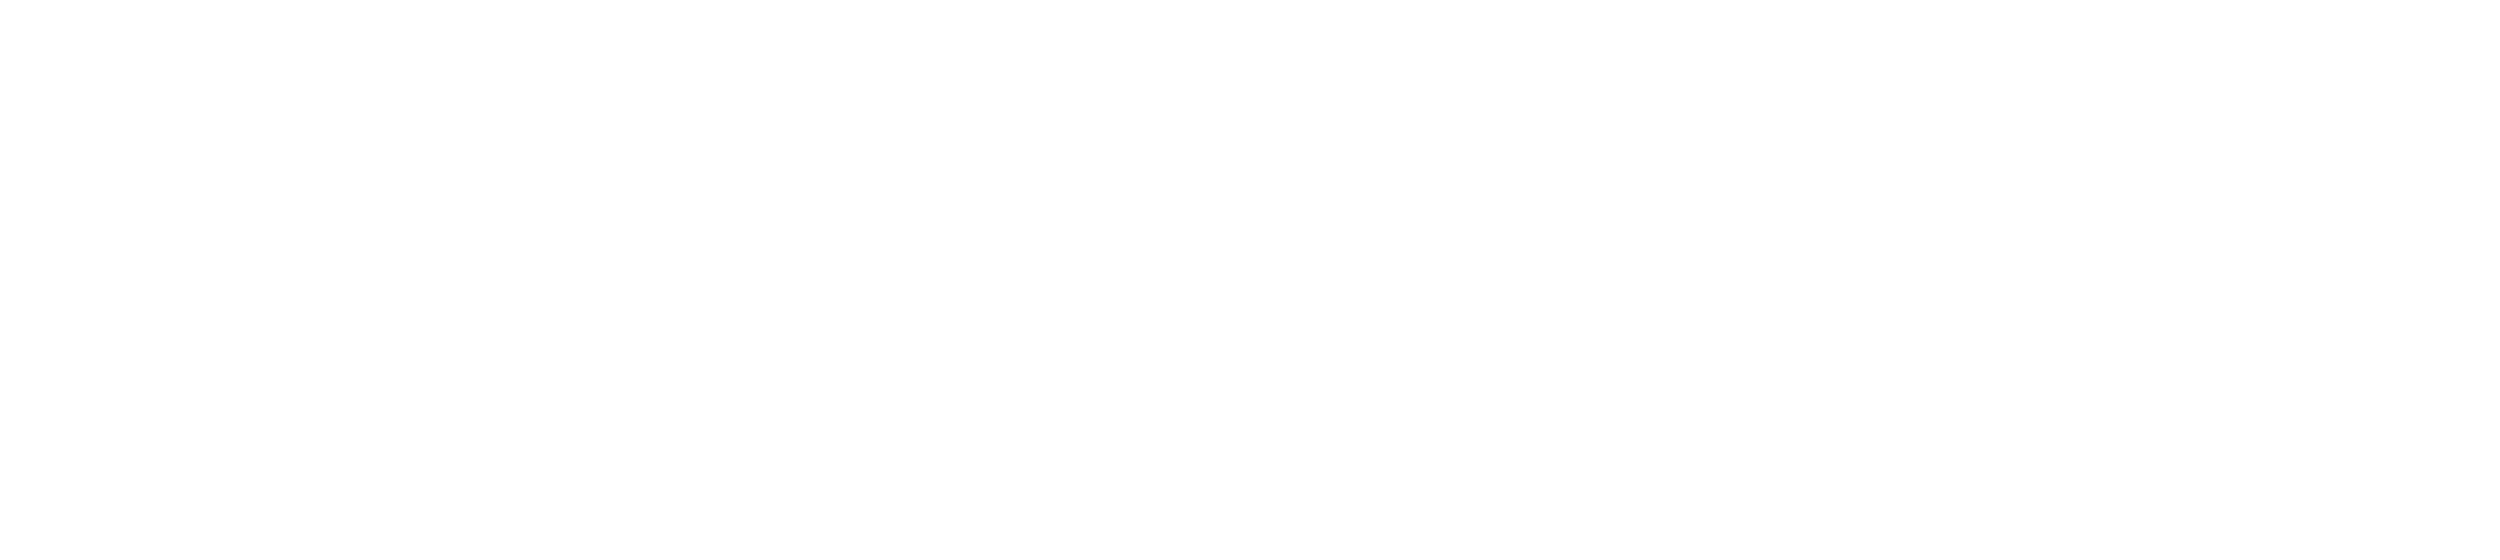 DRF_WHITE.png